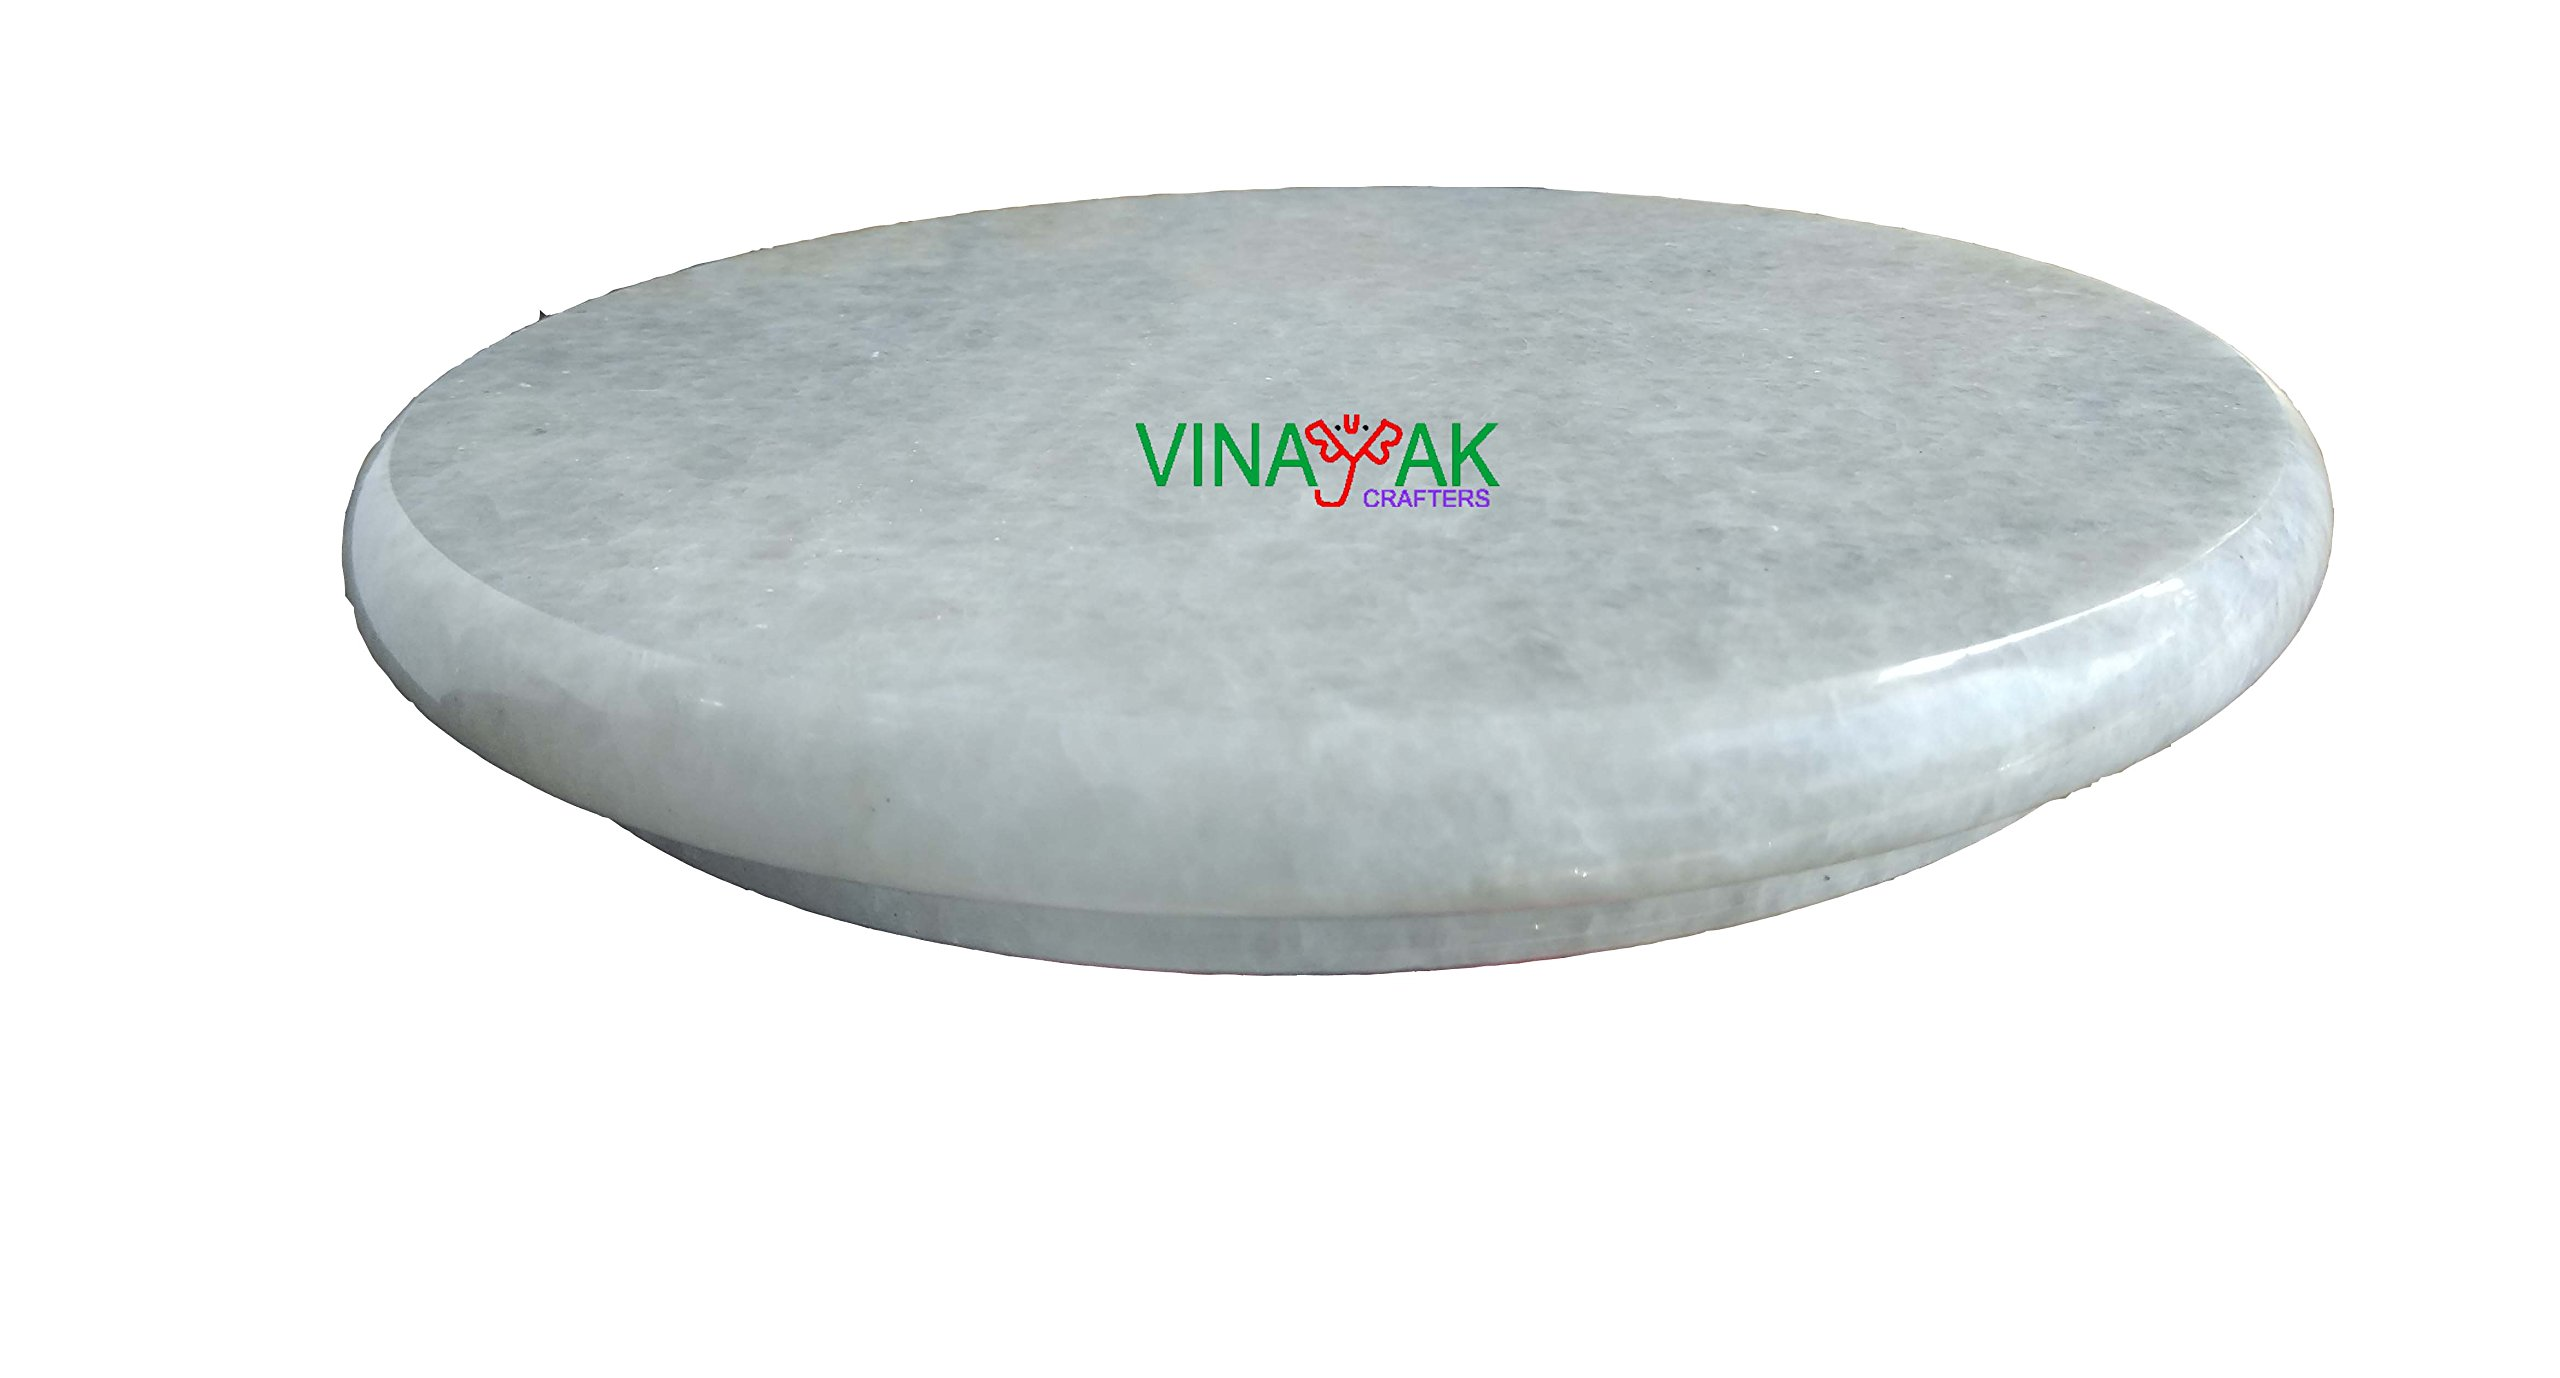 Vinayak Crafters Marble Chakla/Marble Roti Maker/Marble Rolling Board, 9 Inch product image